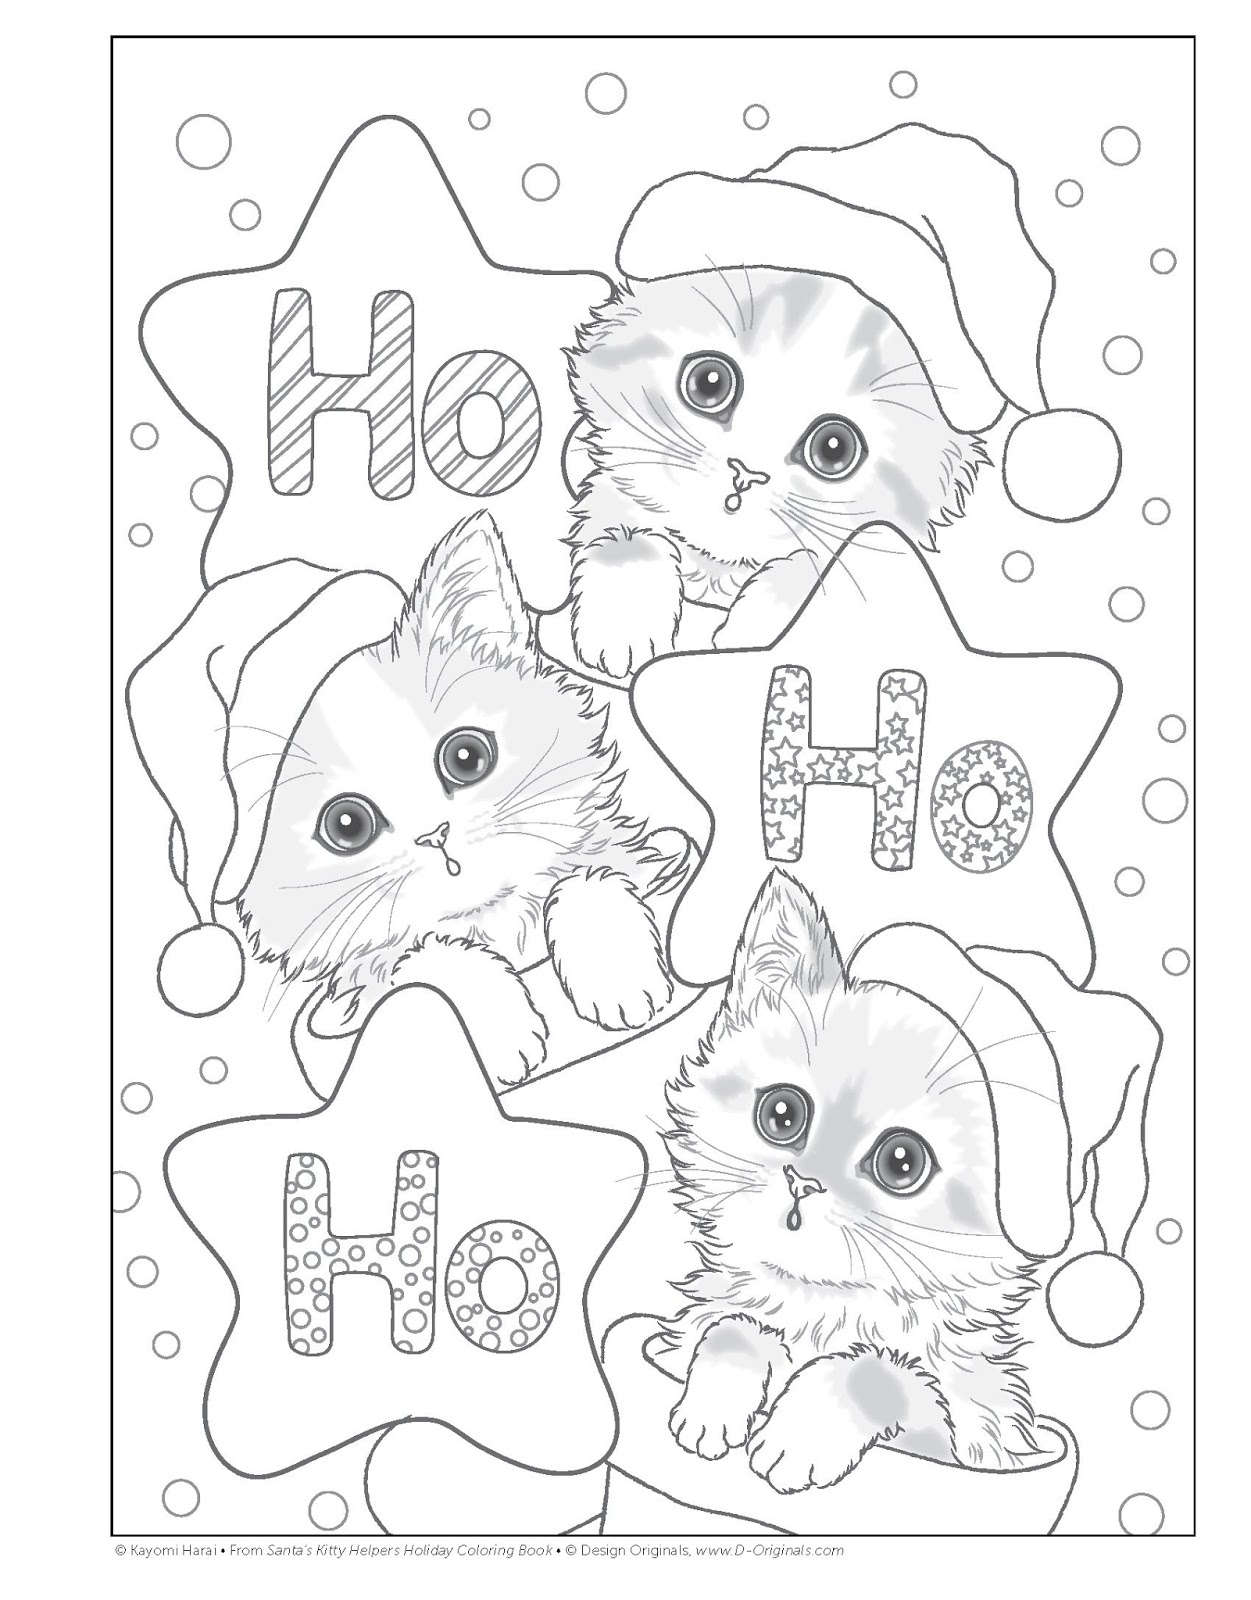 Kayomi Presents Dozens Of Festive Yuletide Kitties Ready To Color With Markers Colored Pencils Watercolors Or Gel Pens Readers Will Recognize These